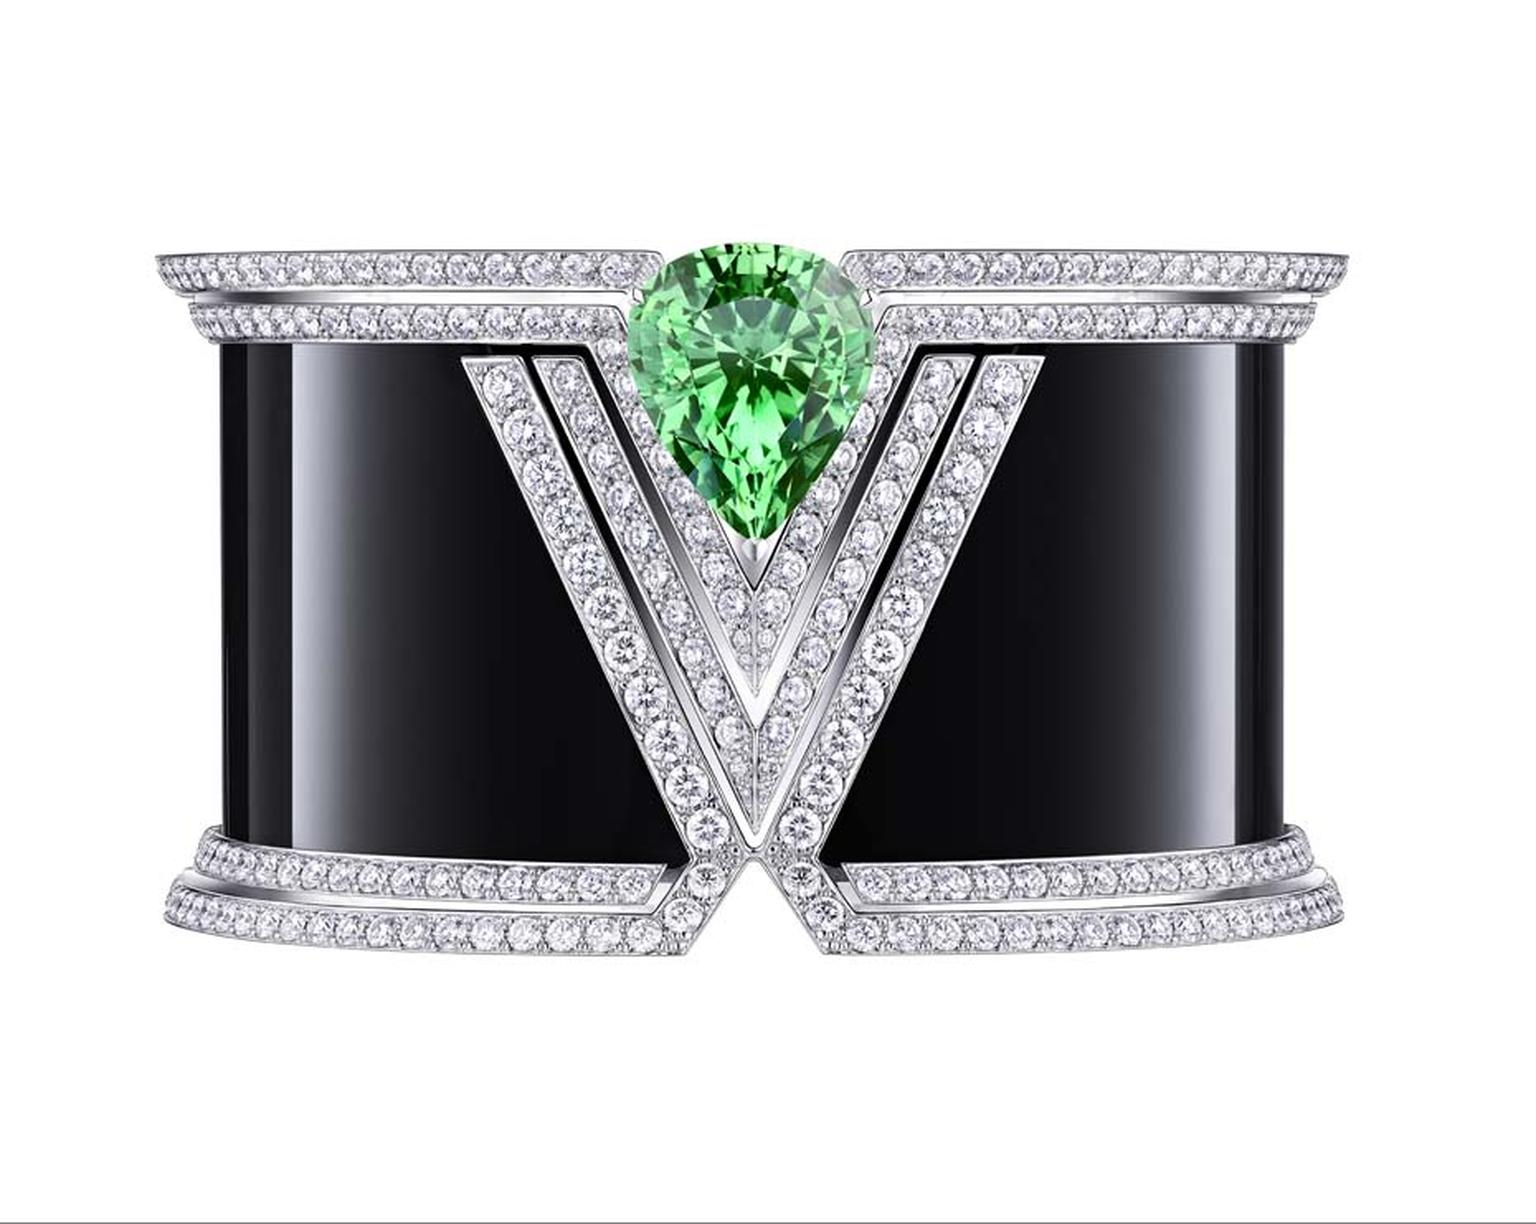 Louis Vuitton Acte V collection cuff featuring black onyx, diamonds and a pear-shaped tsavorite.